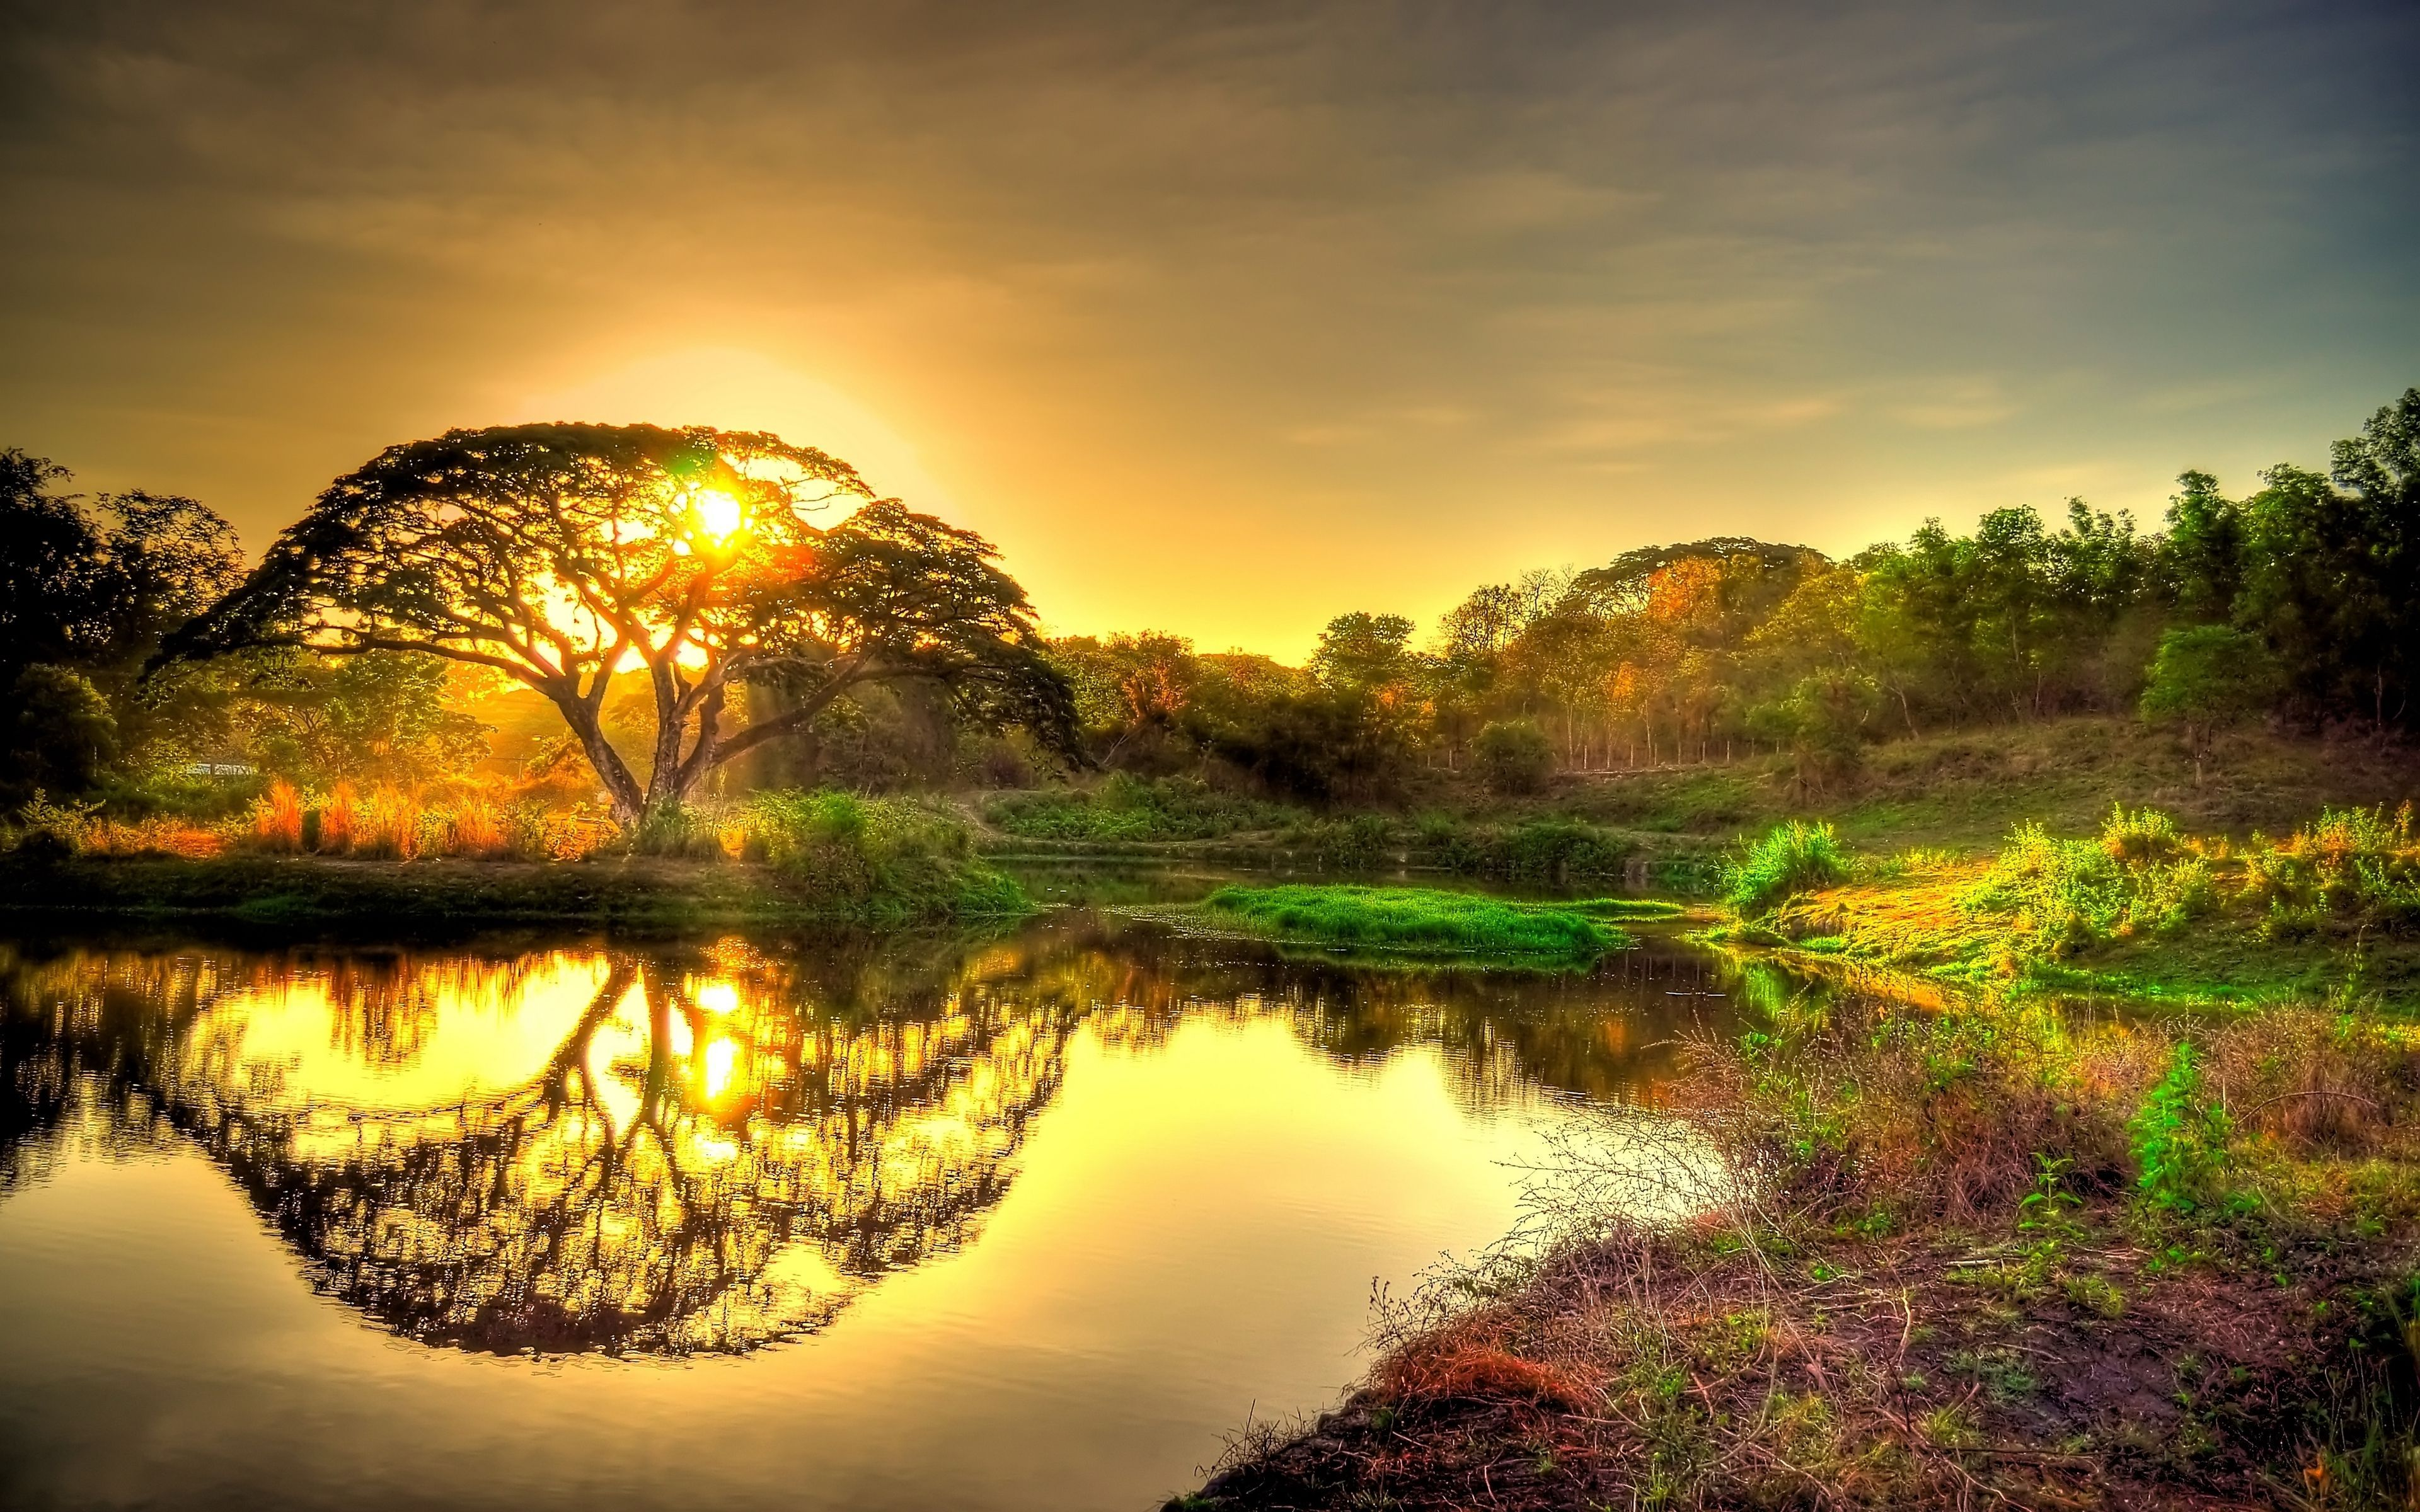 3840x2400 60+ 4K Ultra HD Landscape Wallpapers - Download at WallpaperBro